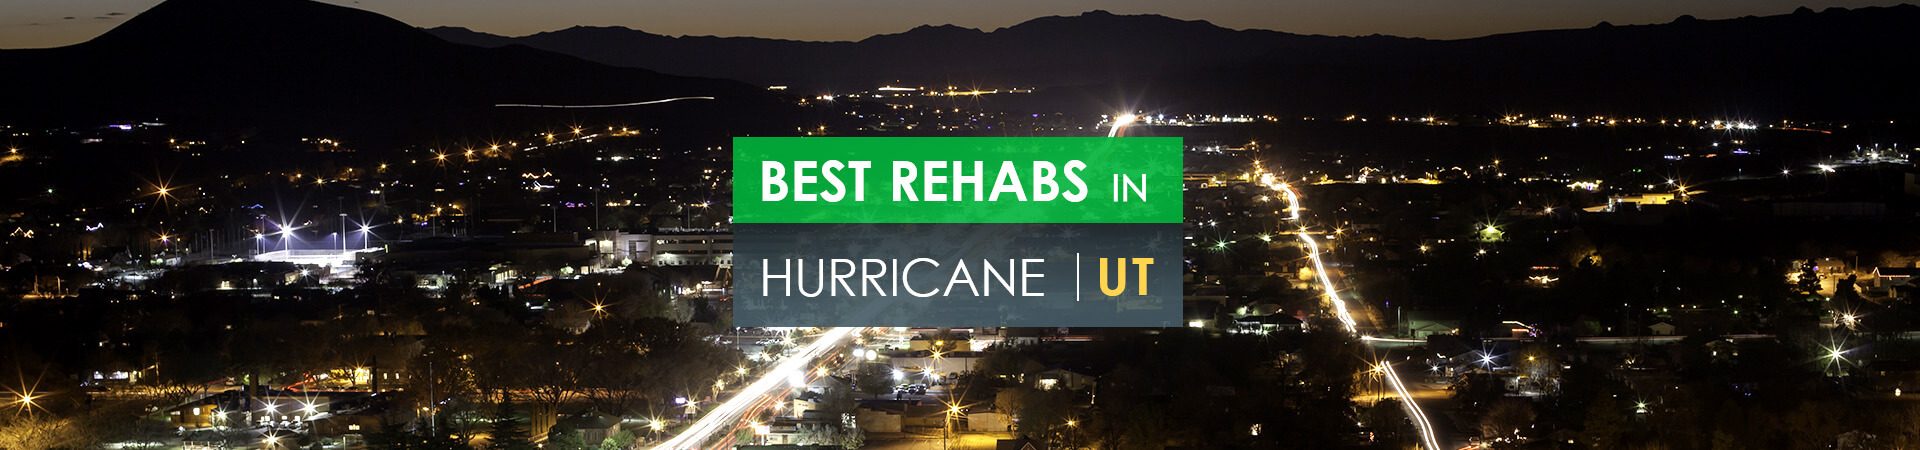 Best rehabs in Hurricane, UT